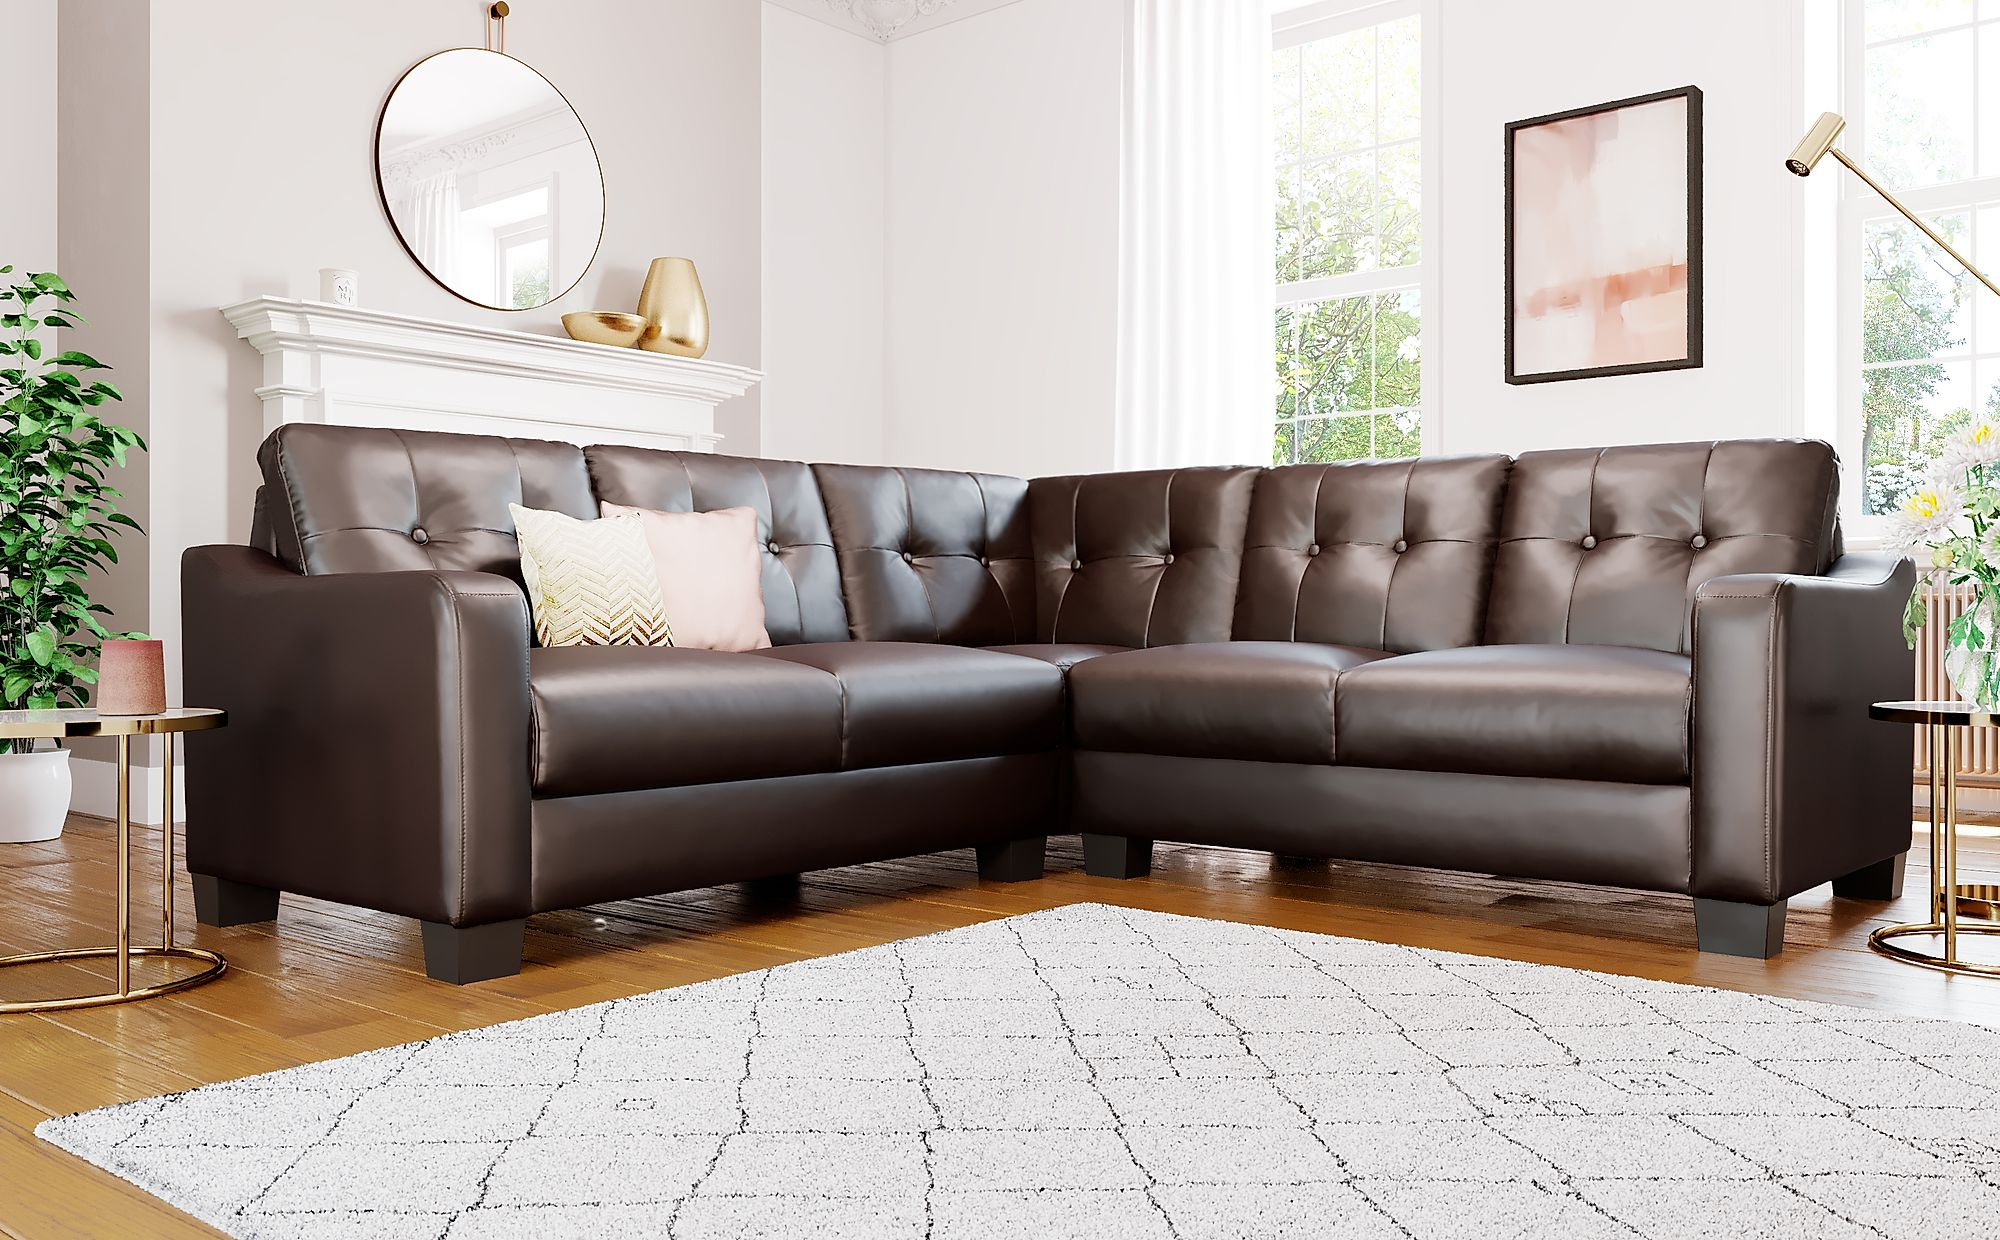 Belmont Brown Leather Corner Sofa | Furniture Choice